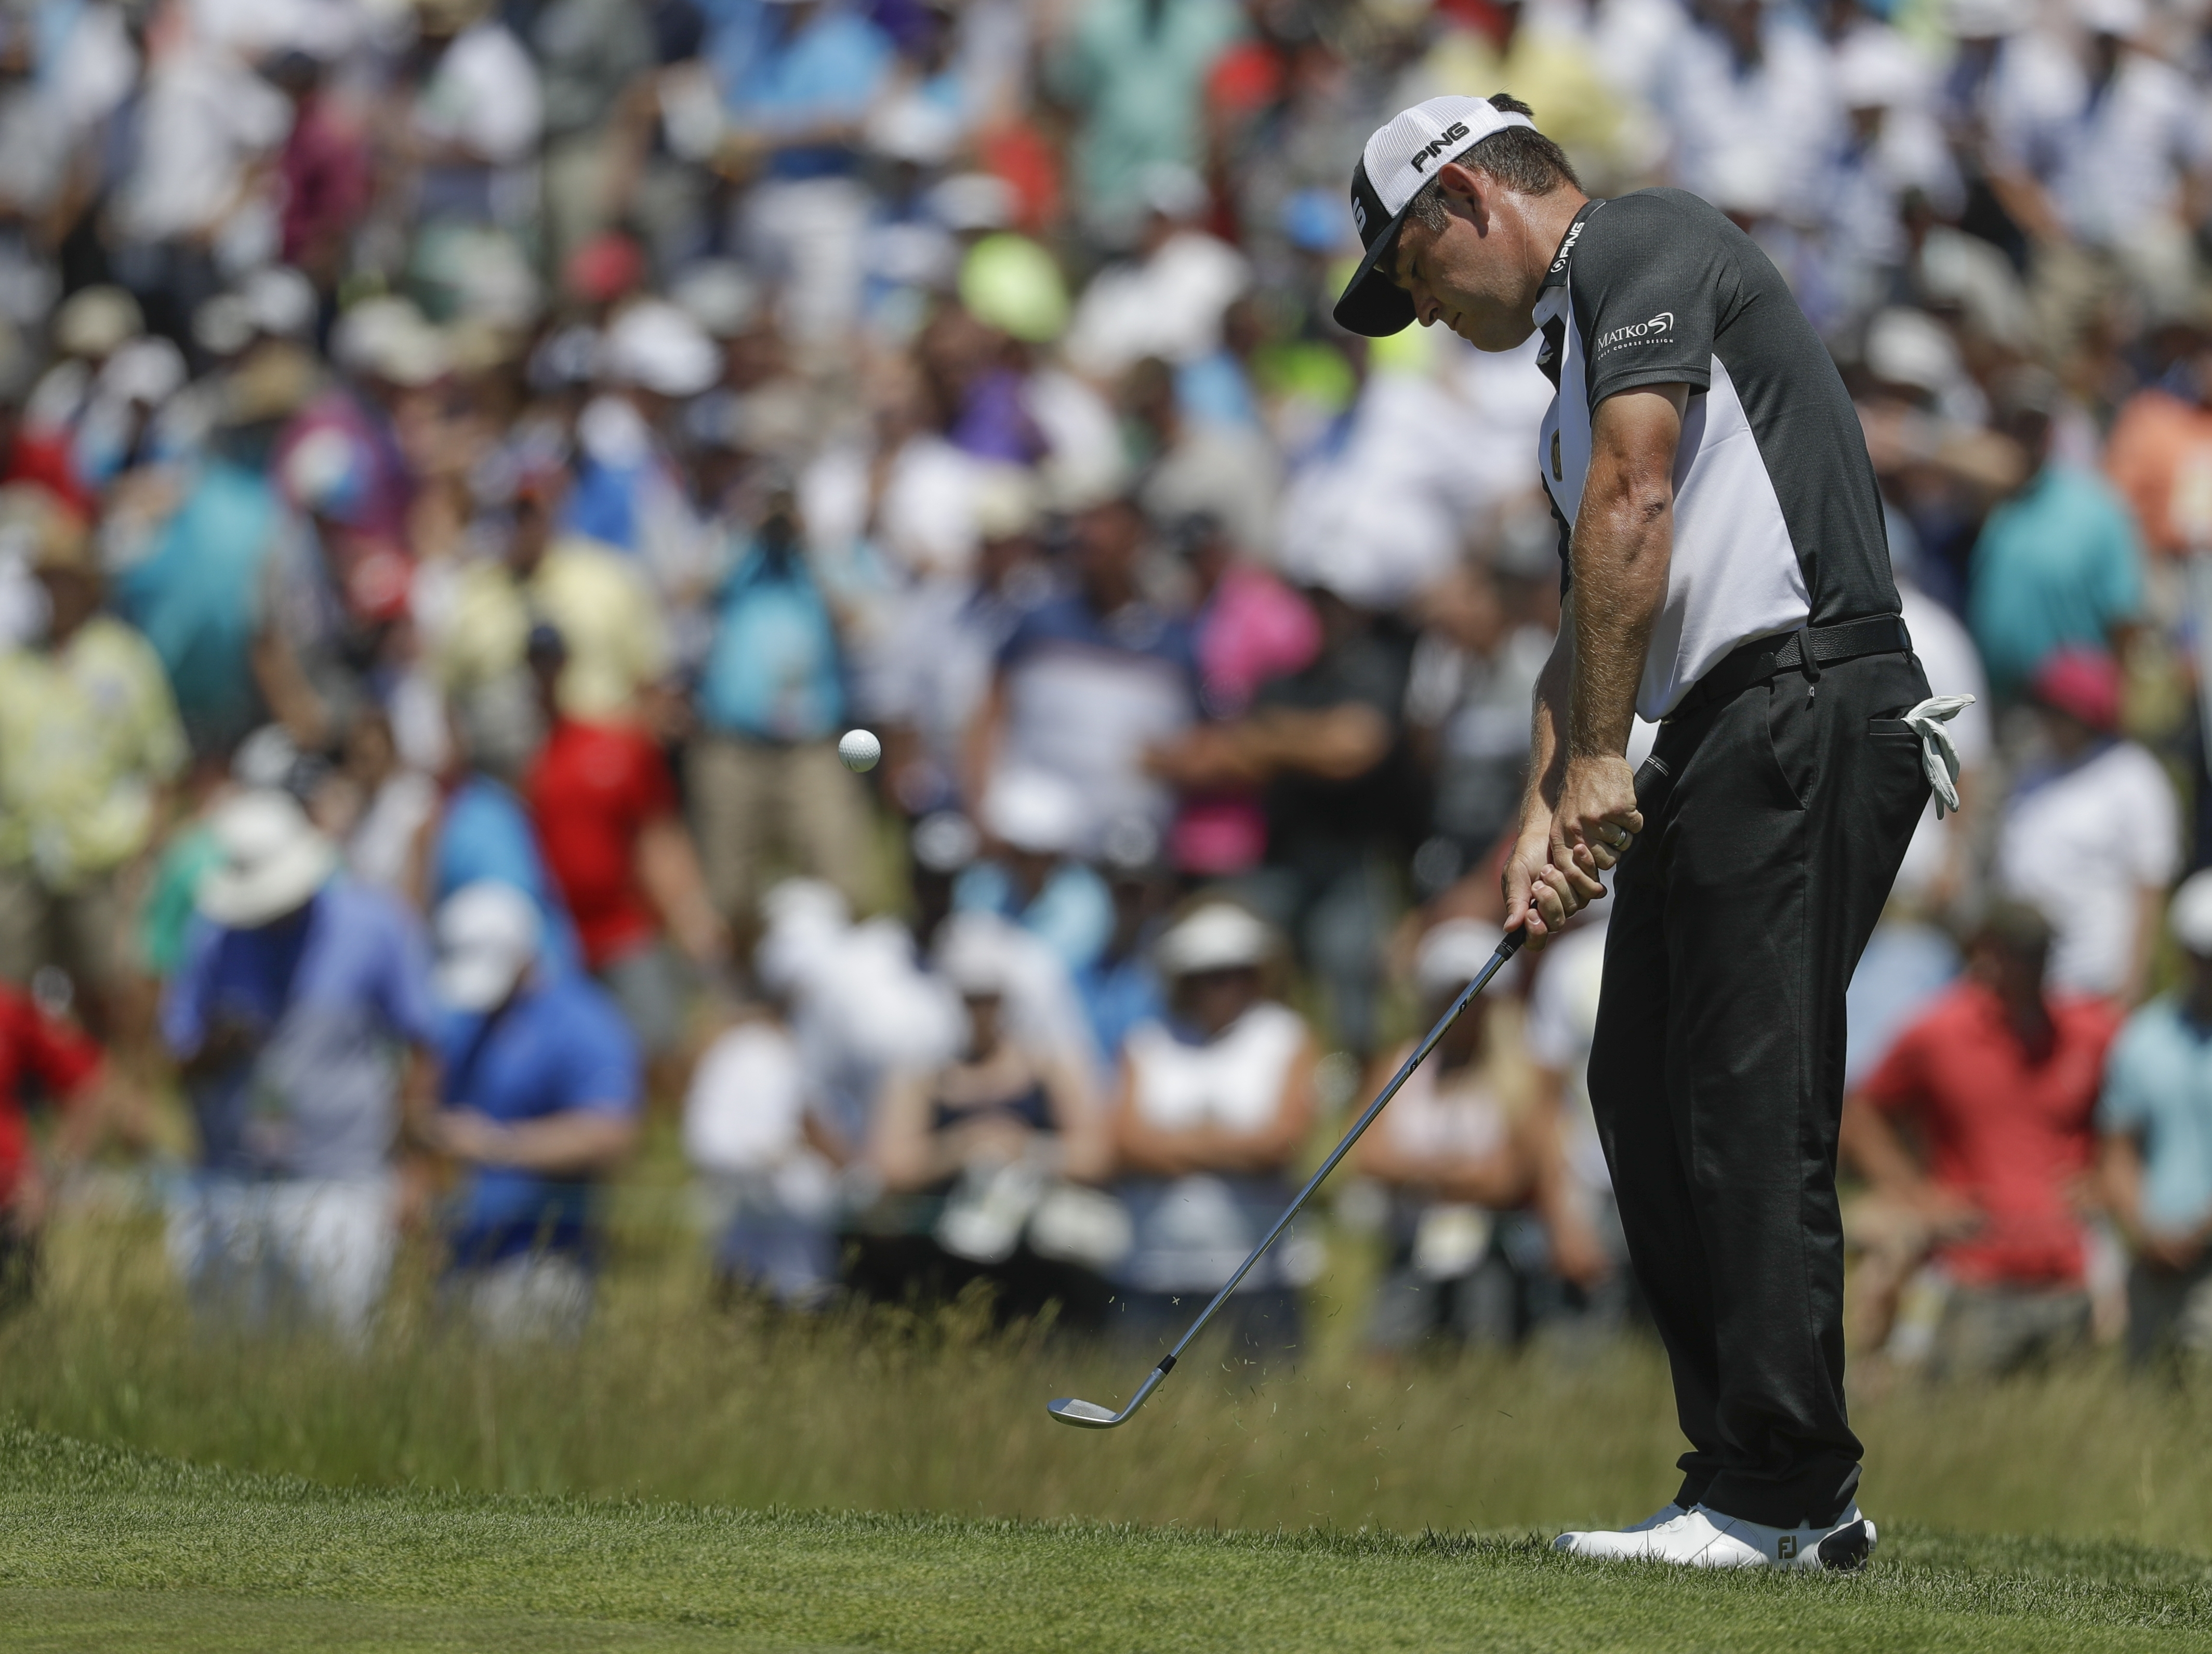 Louis Oosthuizen, of South Africa, chips to the ninth hole during the second round of the U.S. Open golf tournament Friday, June 16, 2017, at Erin Hills in Erin, Wis. (AP Photo/Chris Carlson)